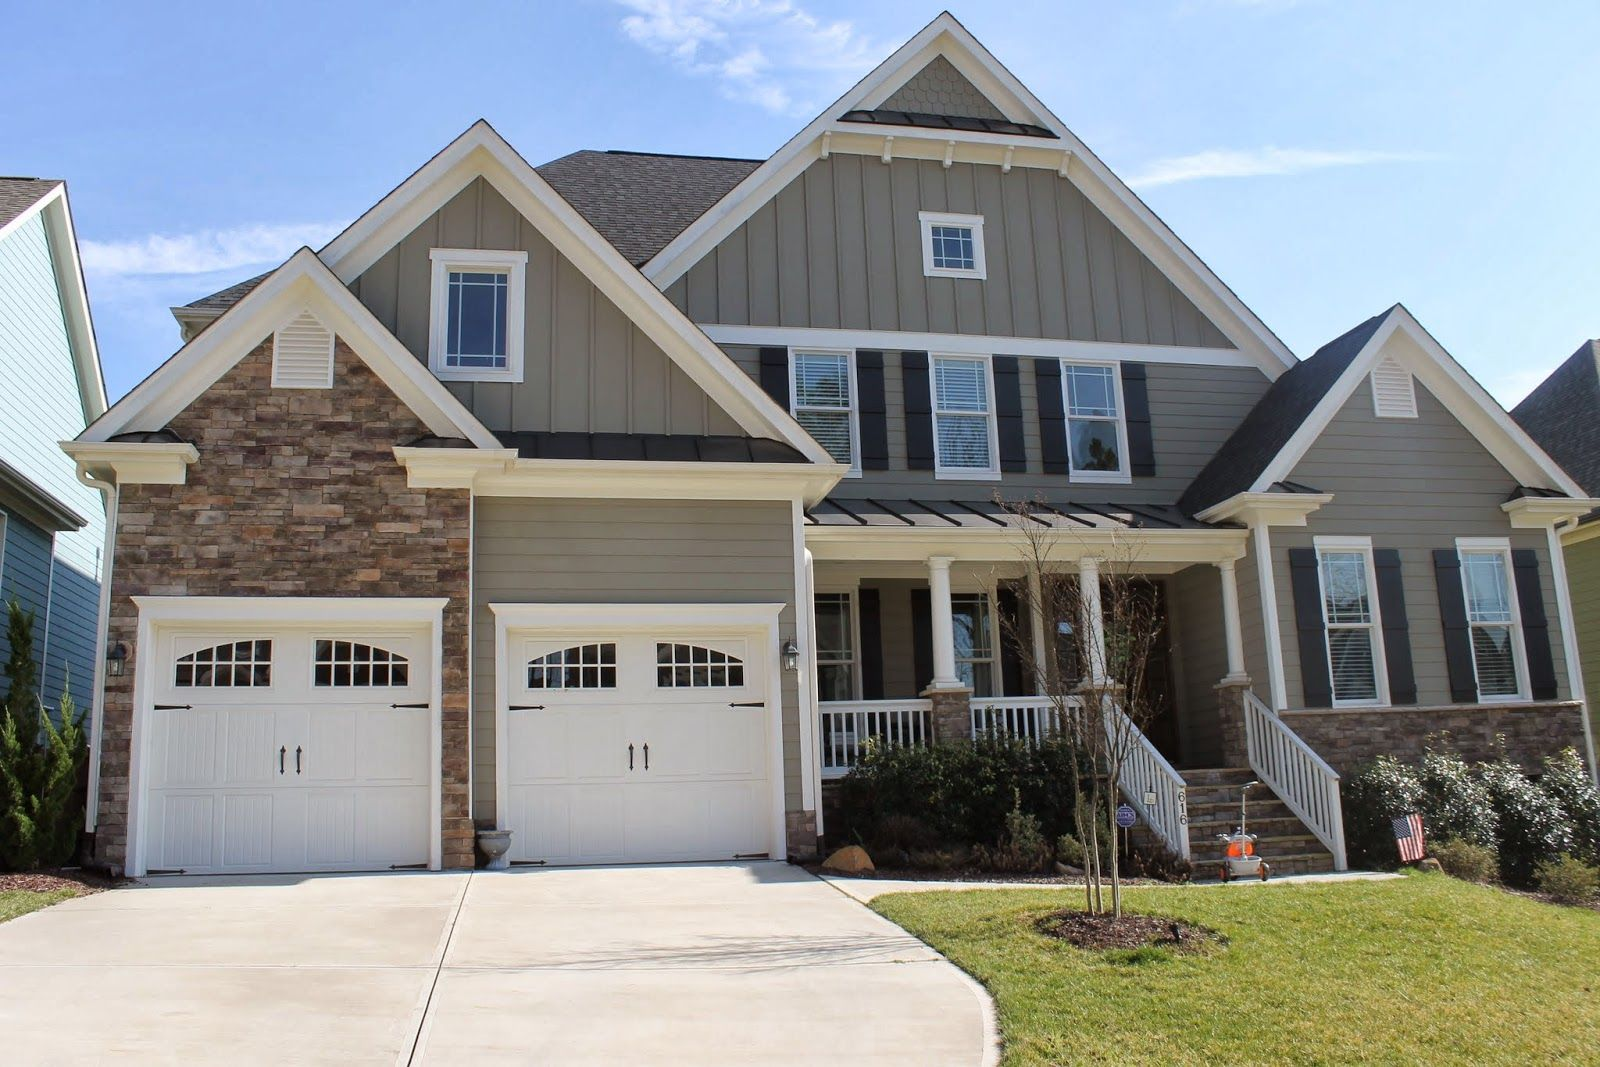 Perfectly Taylored: Exterior Choices | Exterior home color ...